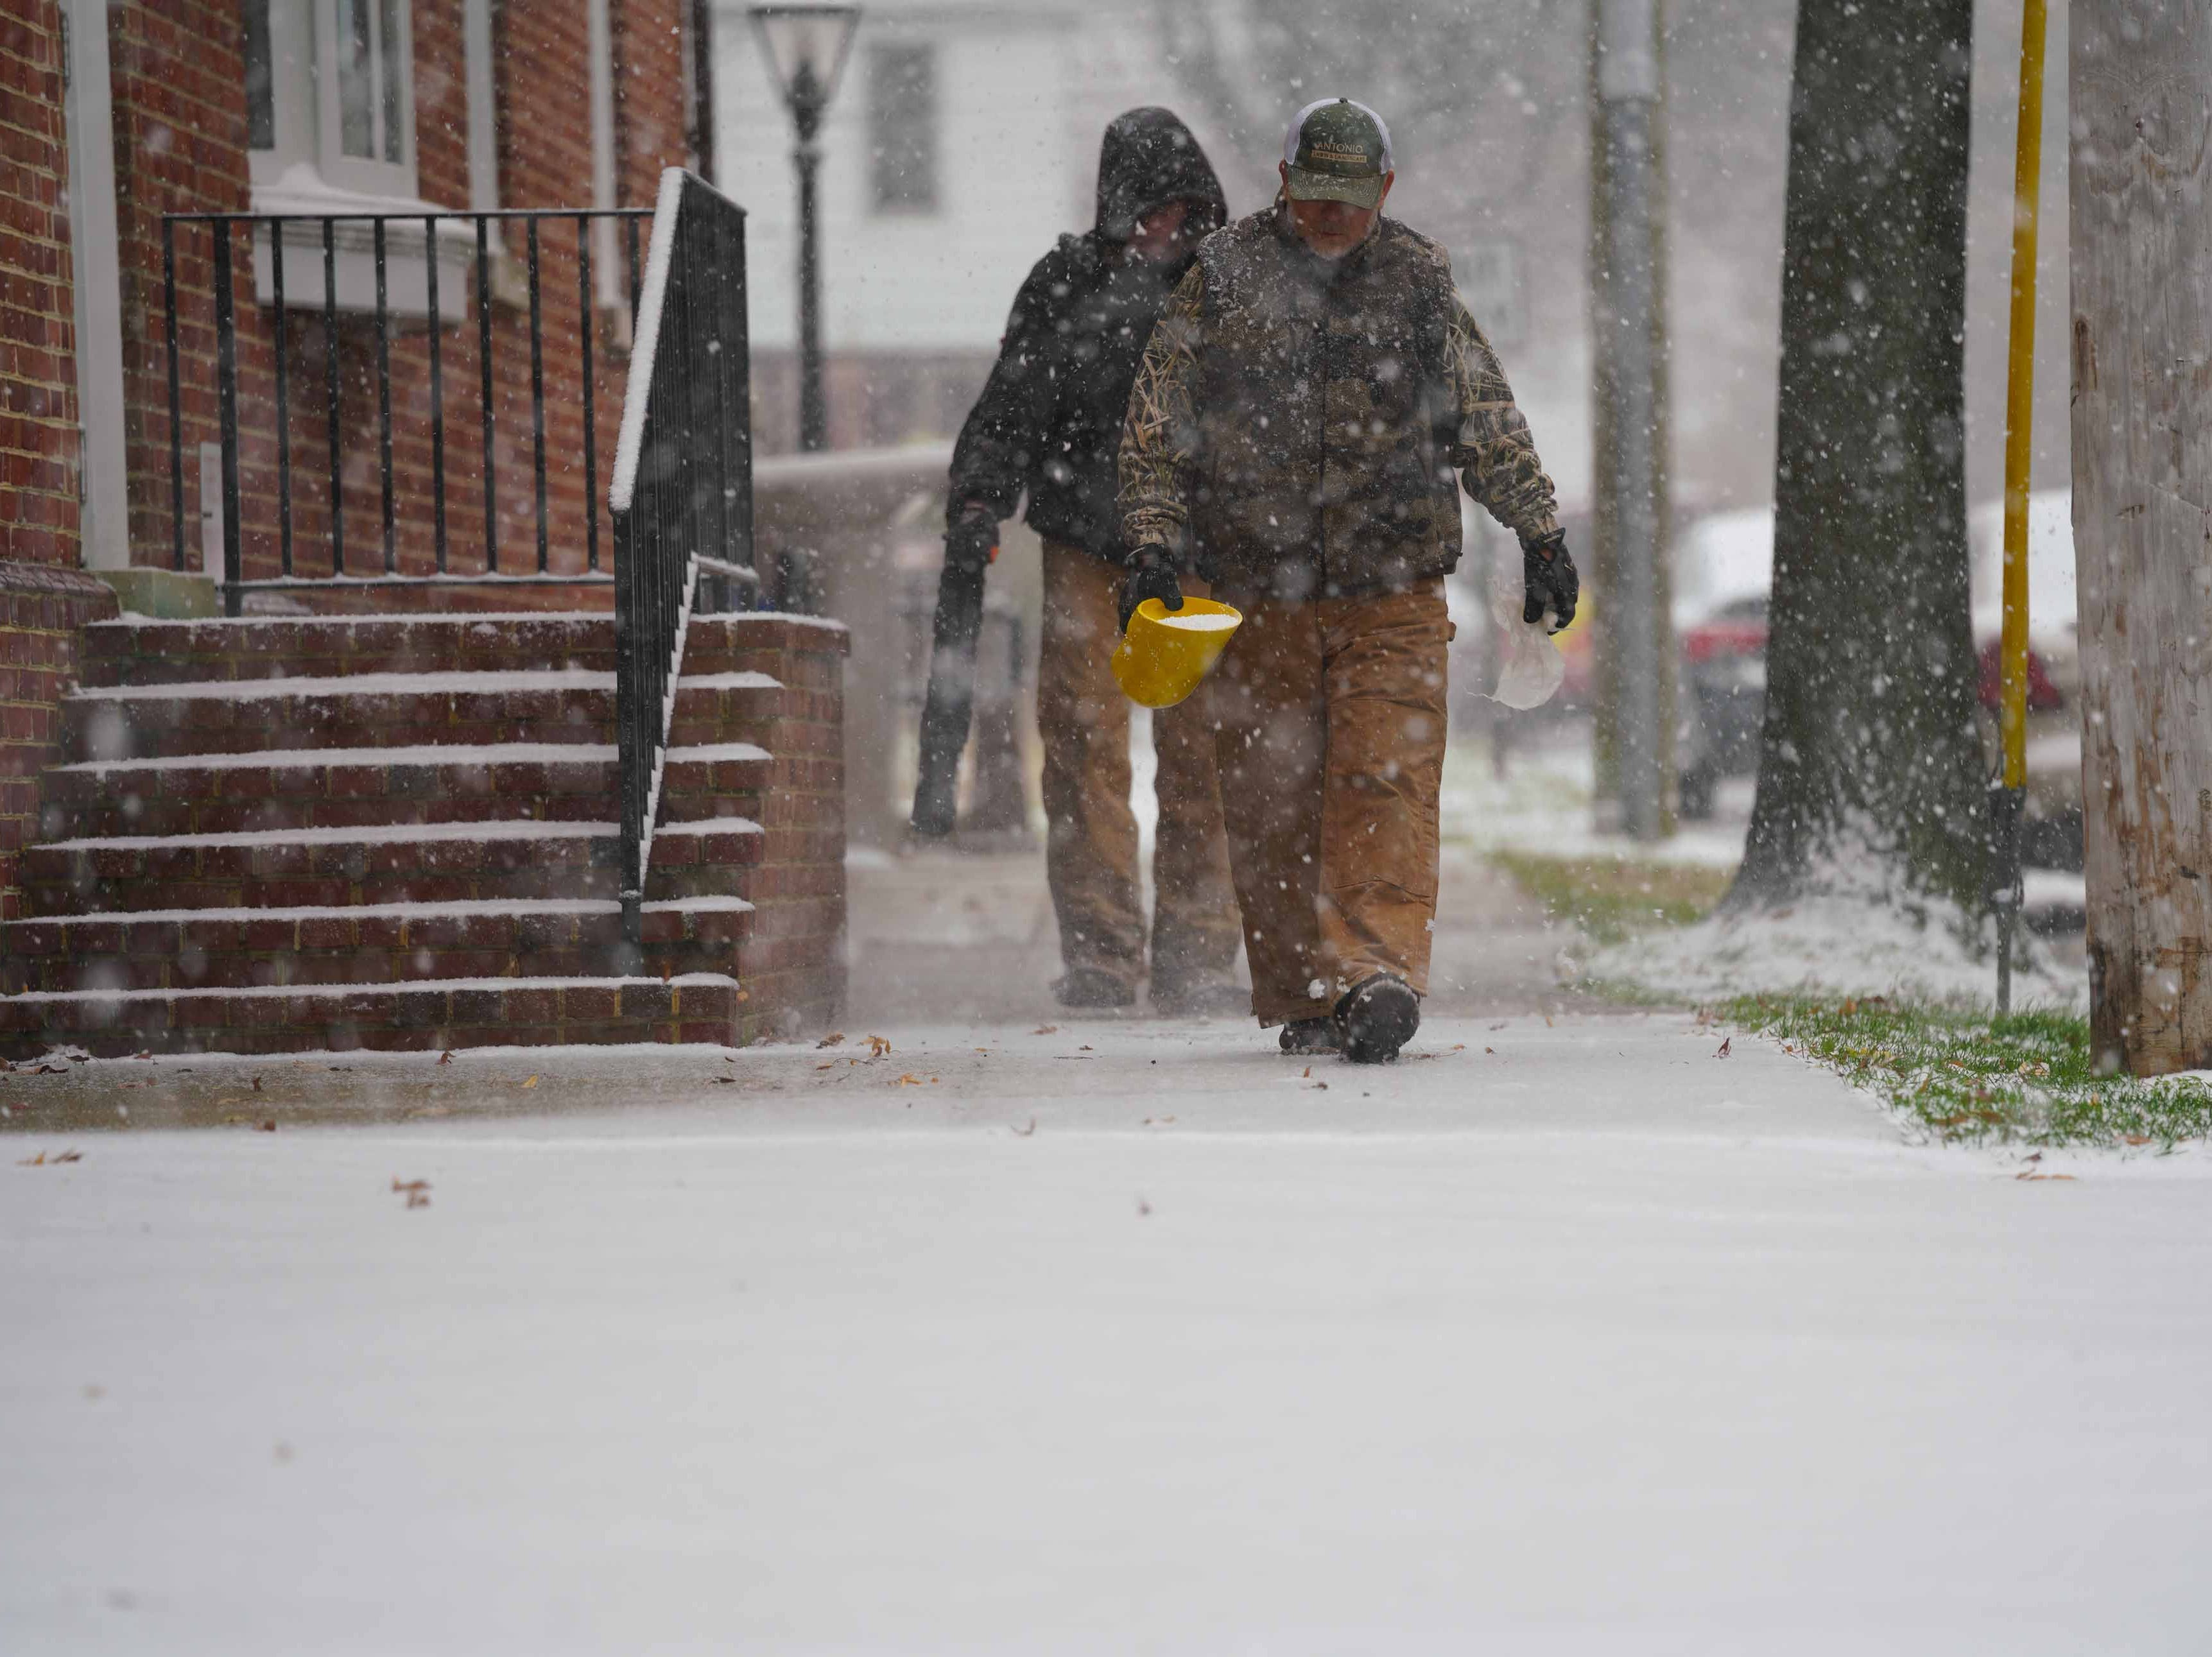 Workers help clear snow from side walks on E. 5th St. in Old New Castle on Thursday morning.